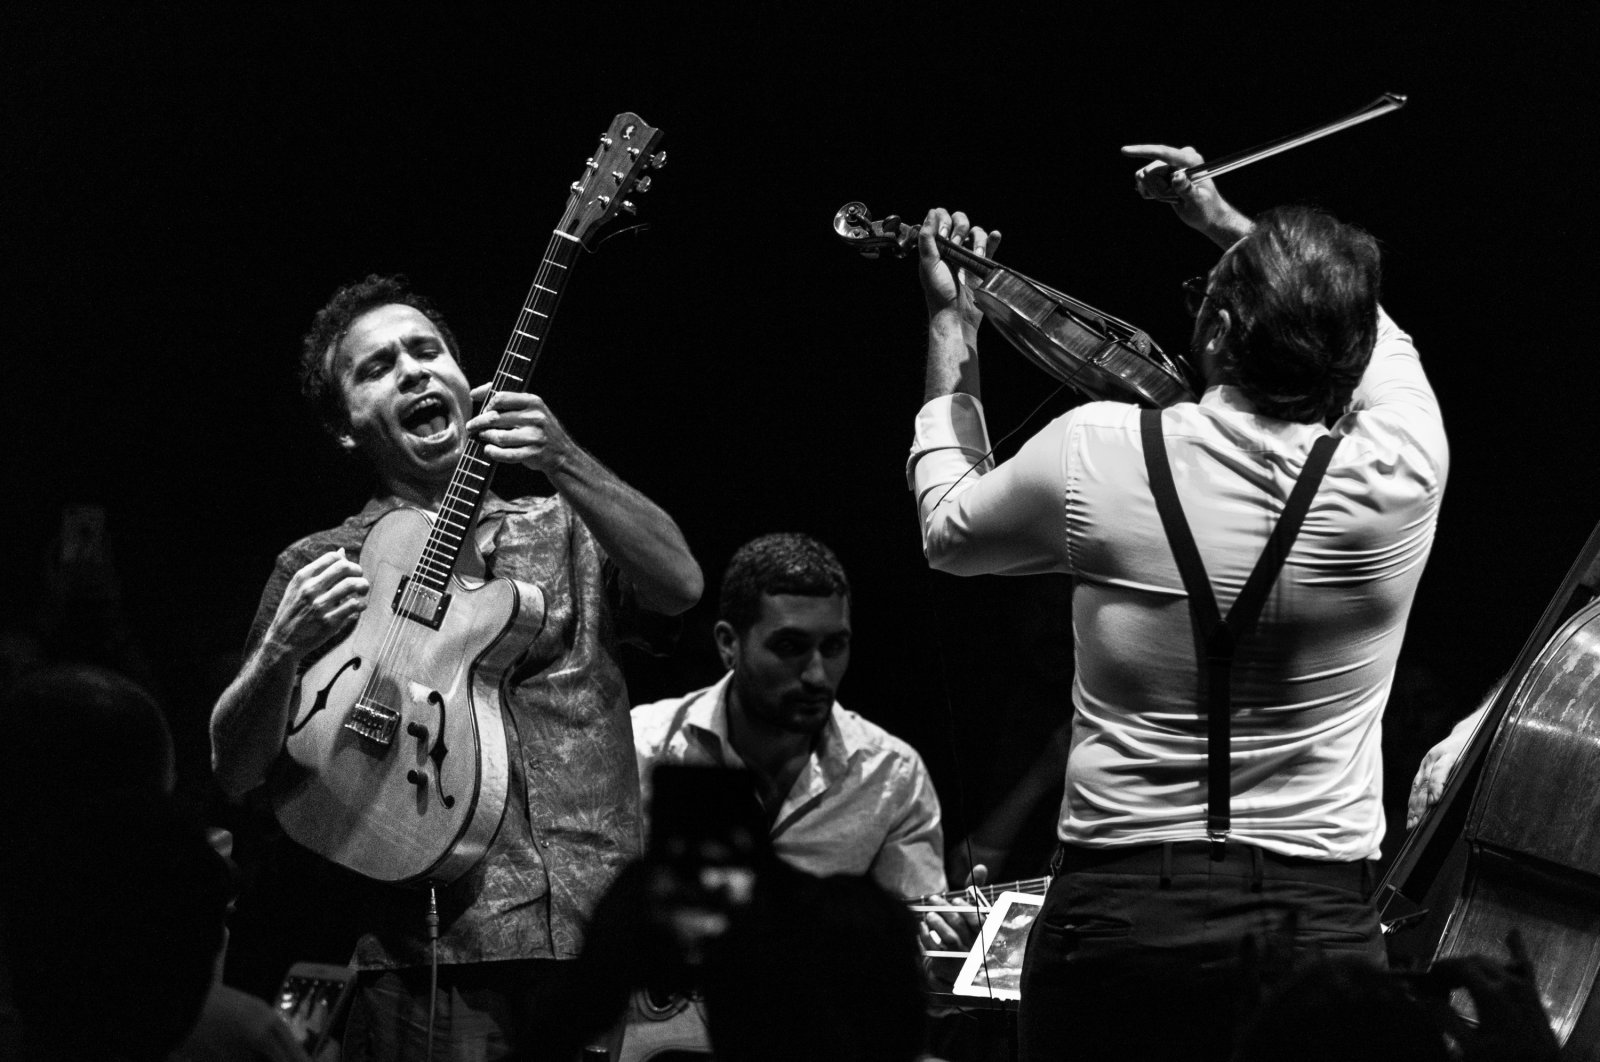 MANOUCHE A LA TURCA, led by Bilal Karaman, on stage as part of the Istanbul Jazz Festival on Sept. 11, 2020. (Courtesy of Istanbul Foundation for Culture and Arts)